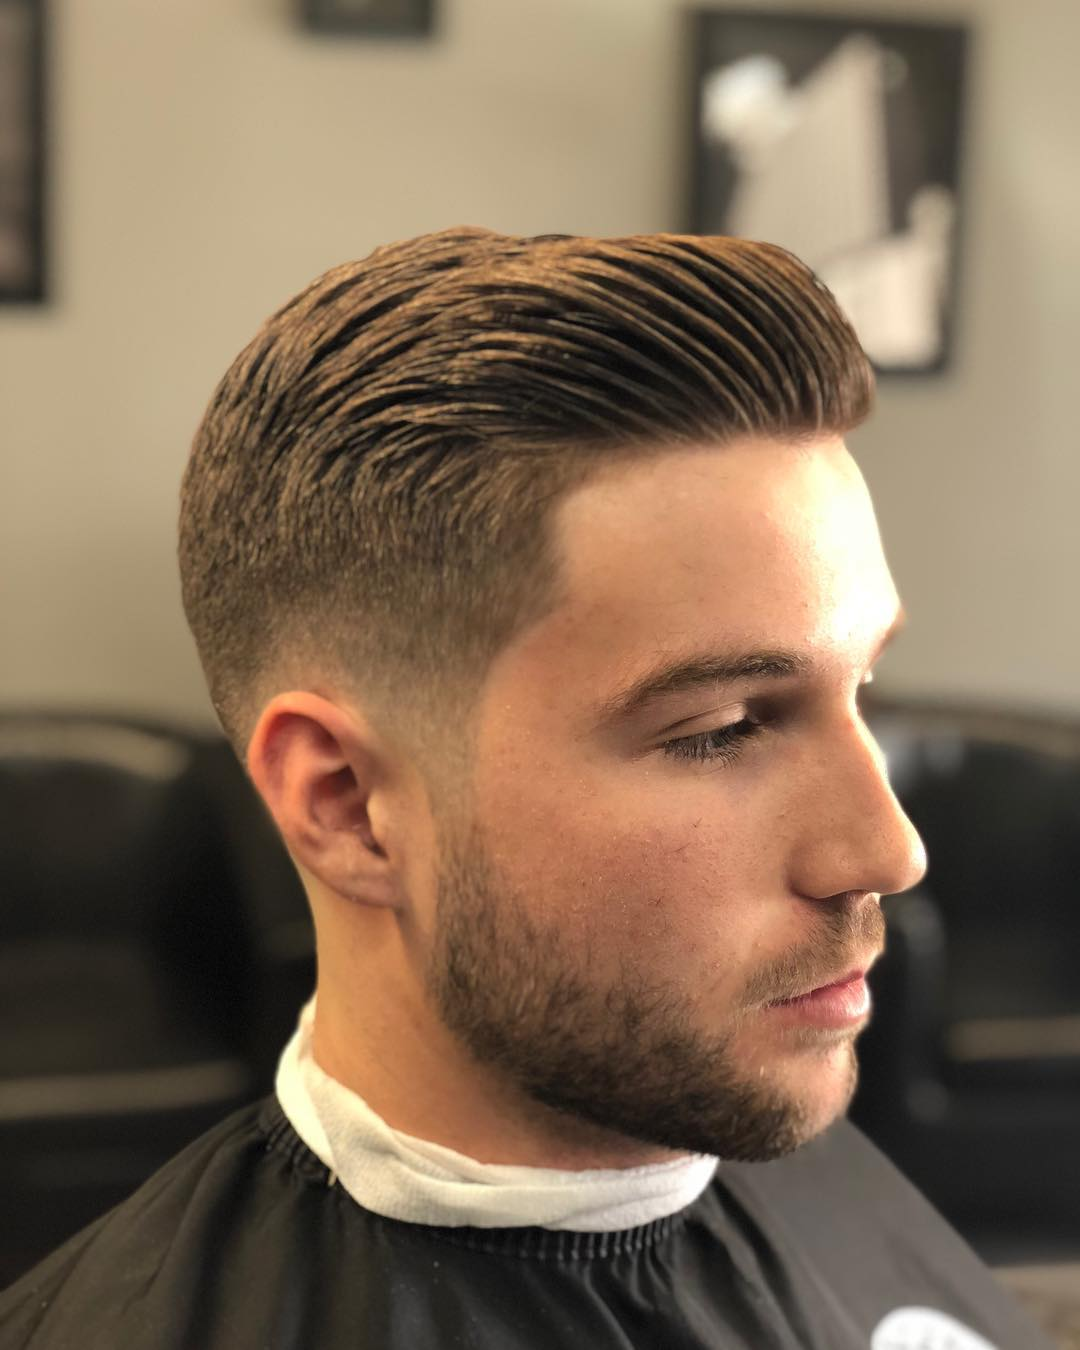 5 Things You Must Consider Before Going A For Low Fade Haircut